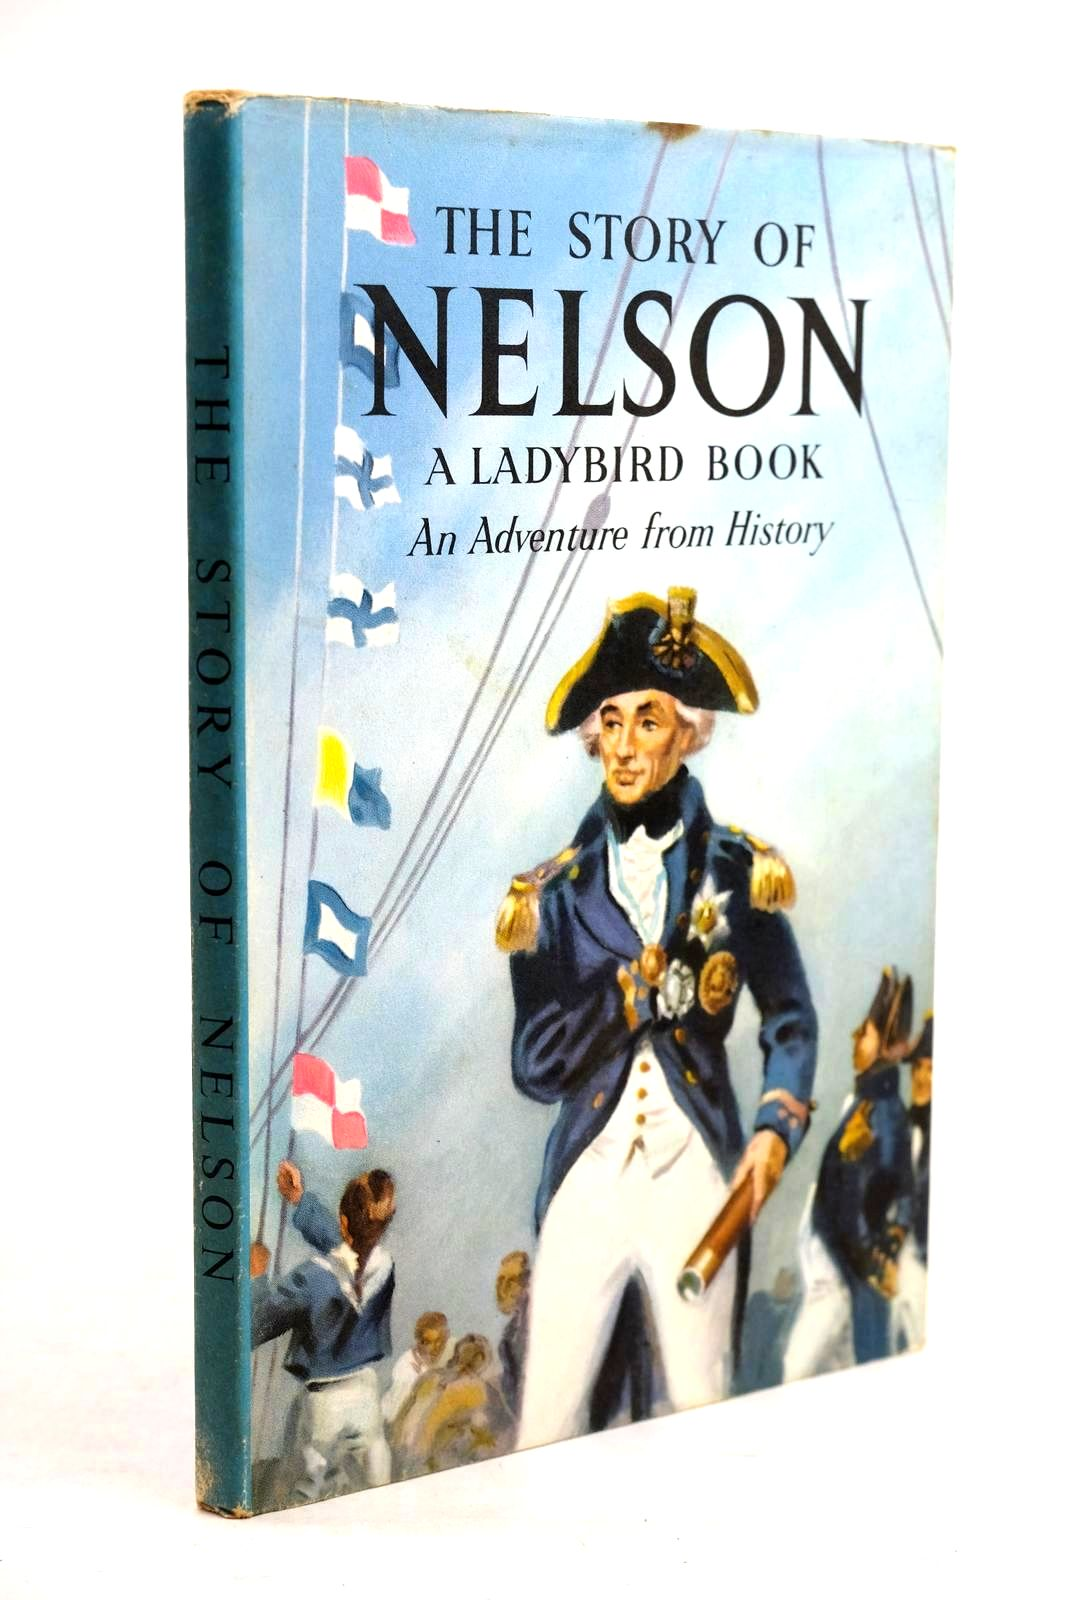 Photo of THE STORY OF NELSON written by Peach, L. Du Garde illustrated by Kenney, John published by Wills & Hepworth Ltd. (STOCK CODE: 1320625)  for sale by Stella & Rose's Books